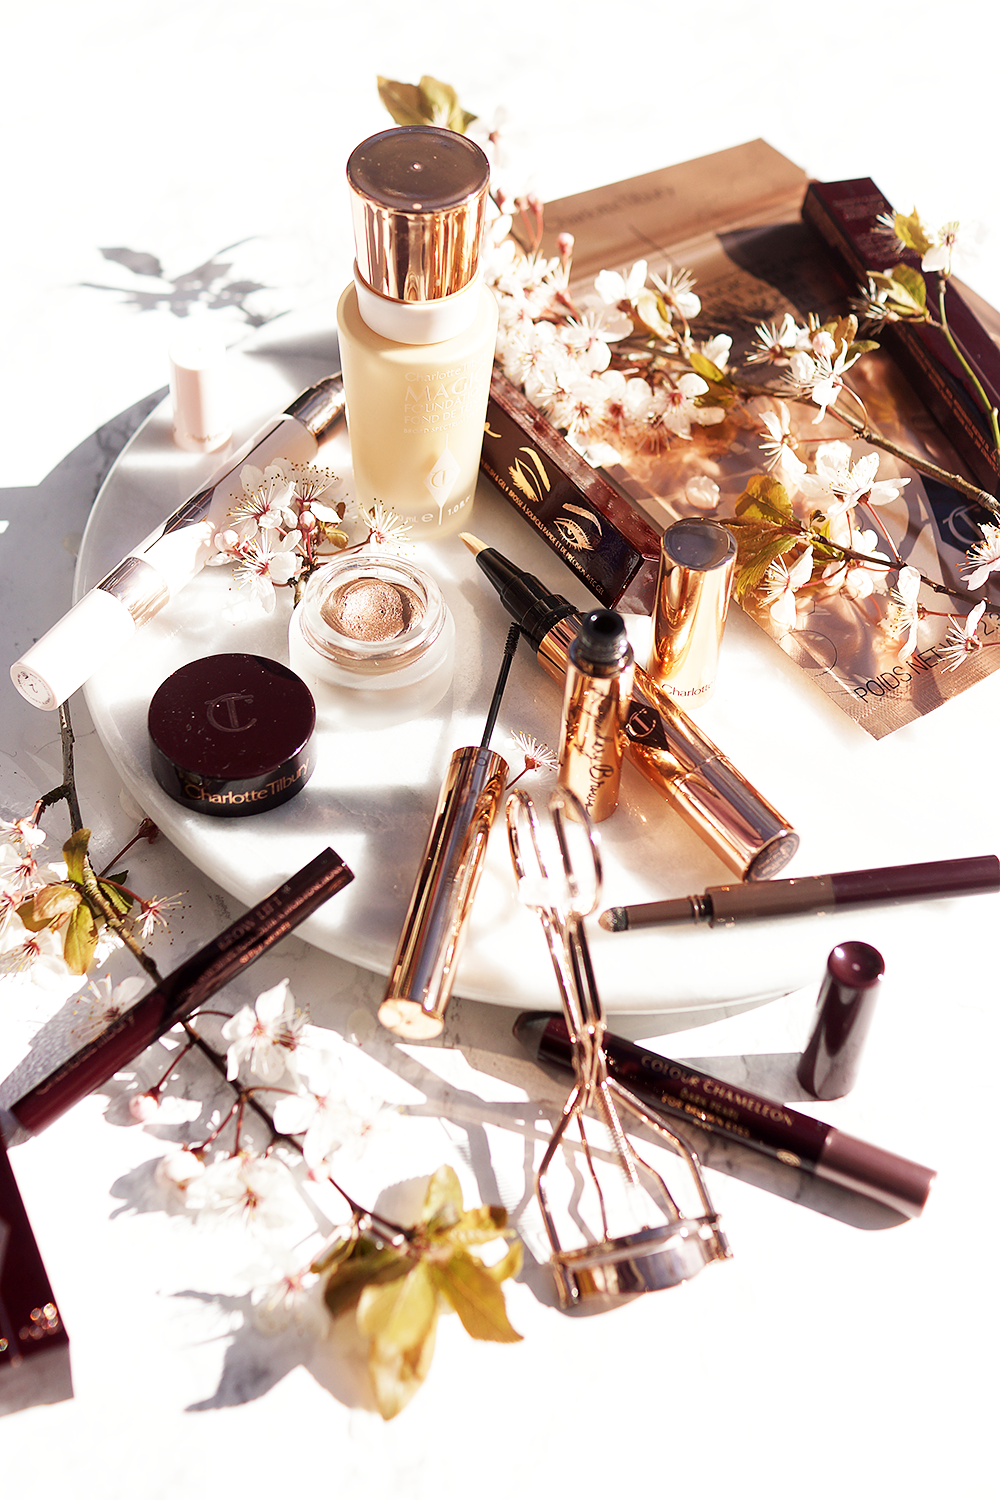 barely-there-beauty-blog-charlotte-tilbury-first-impressions-review-flatlay